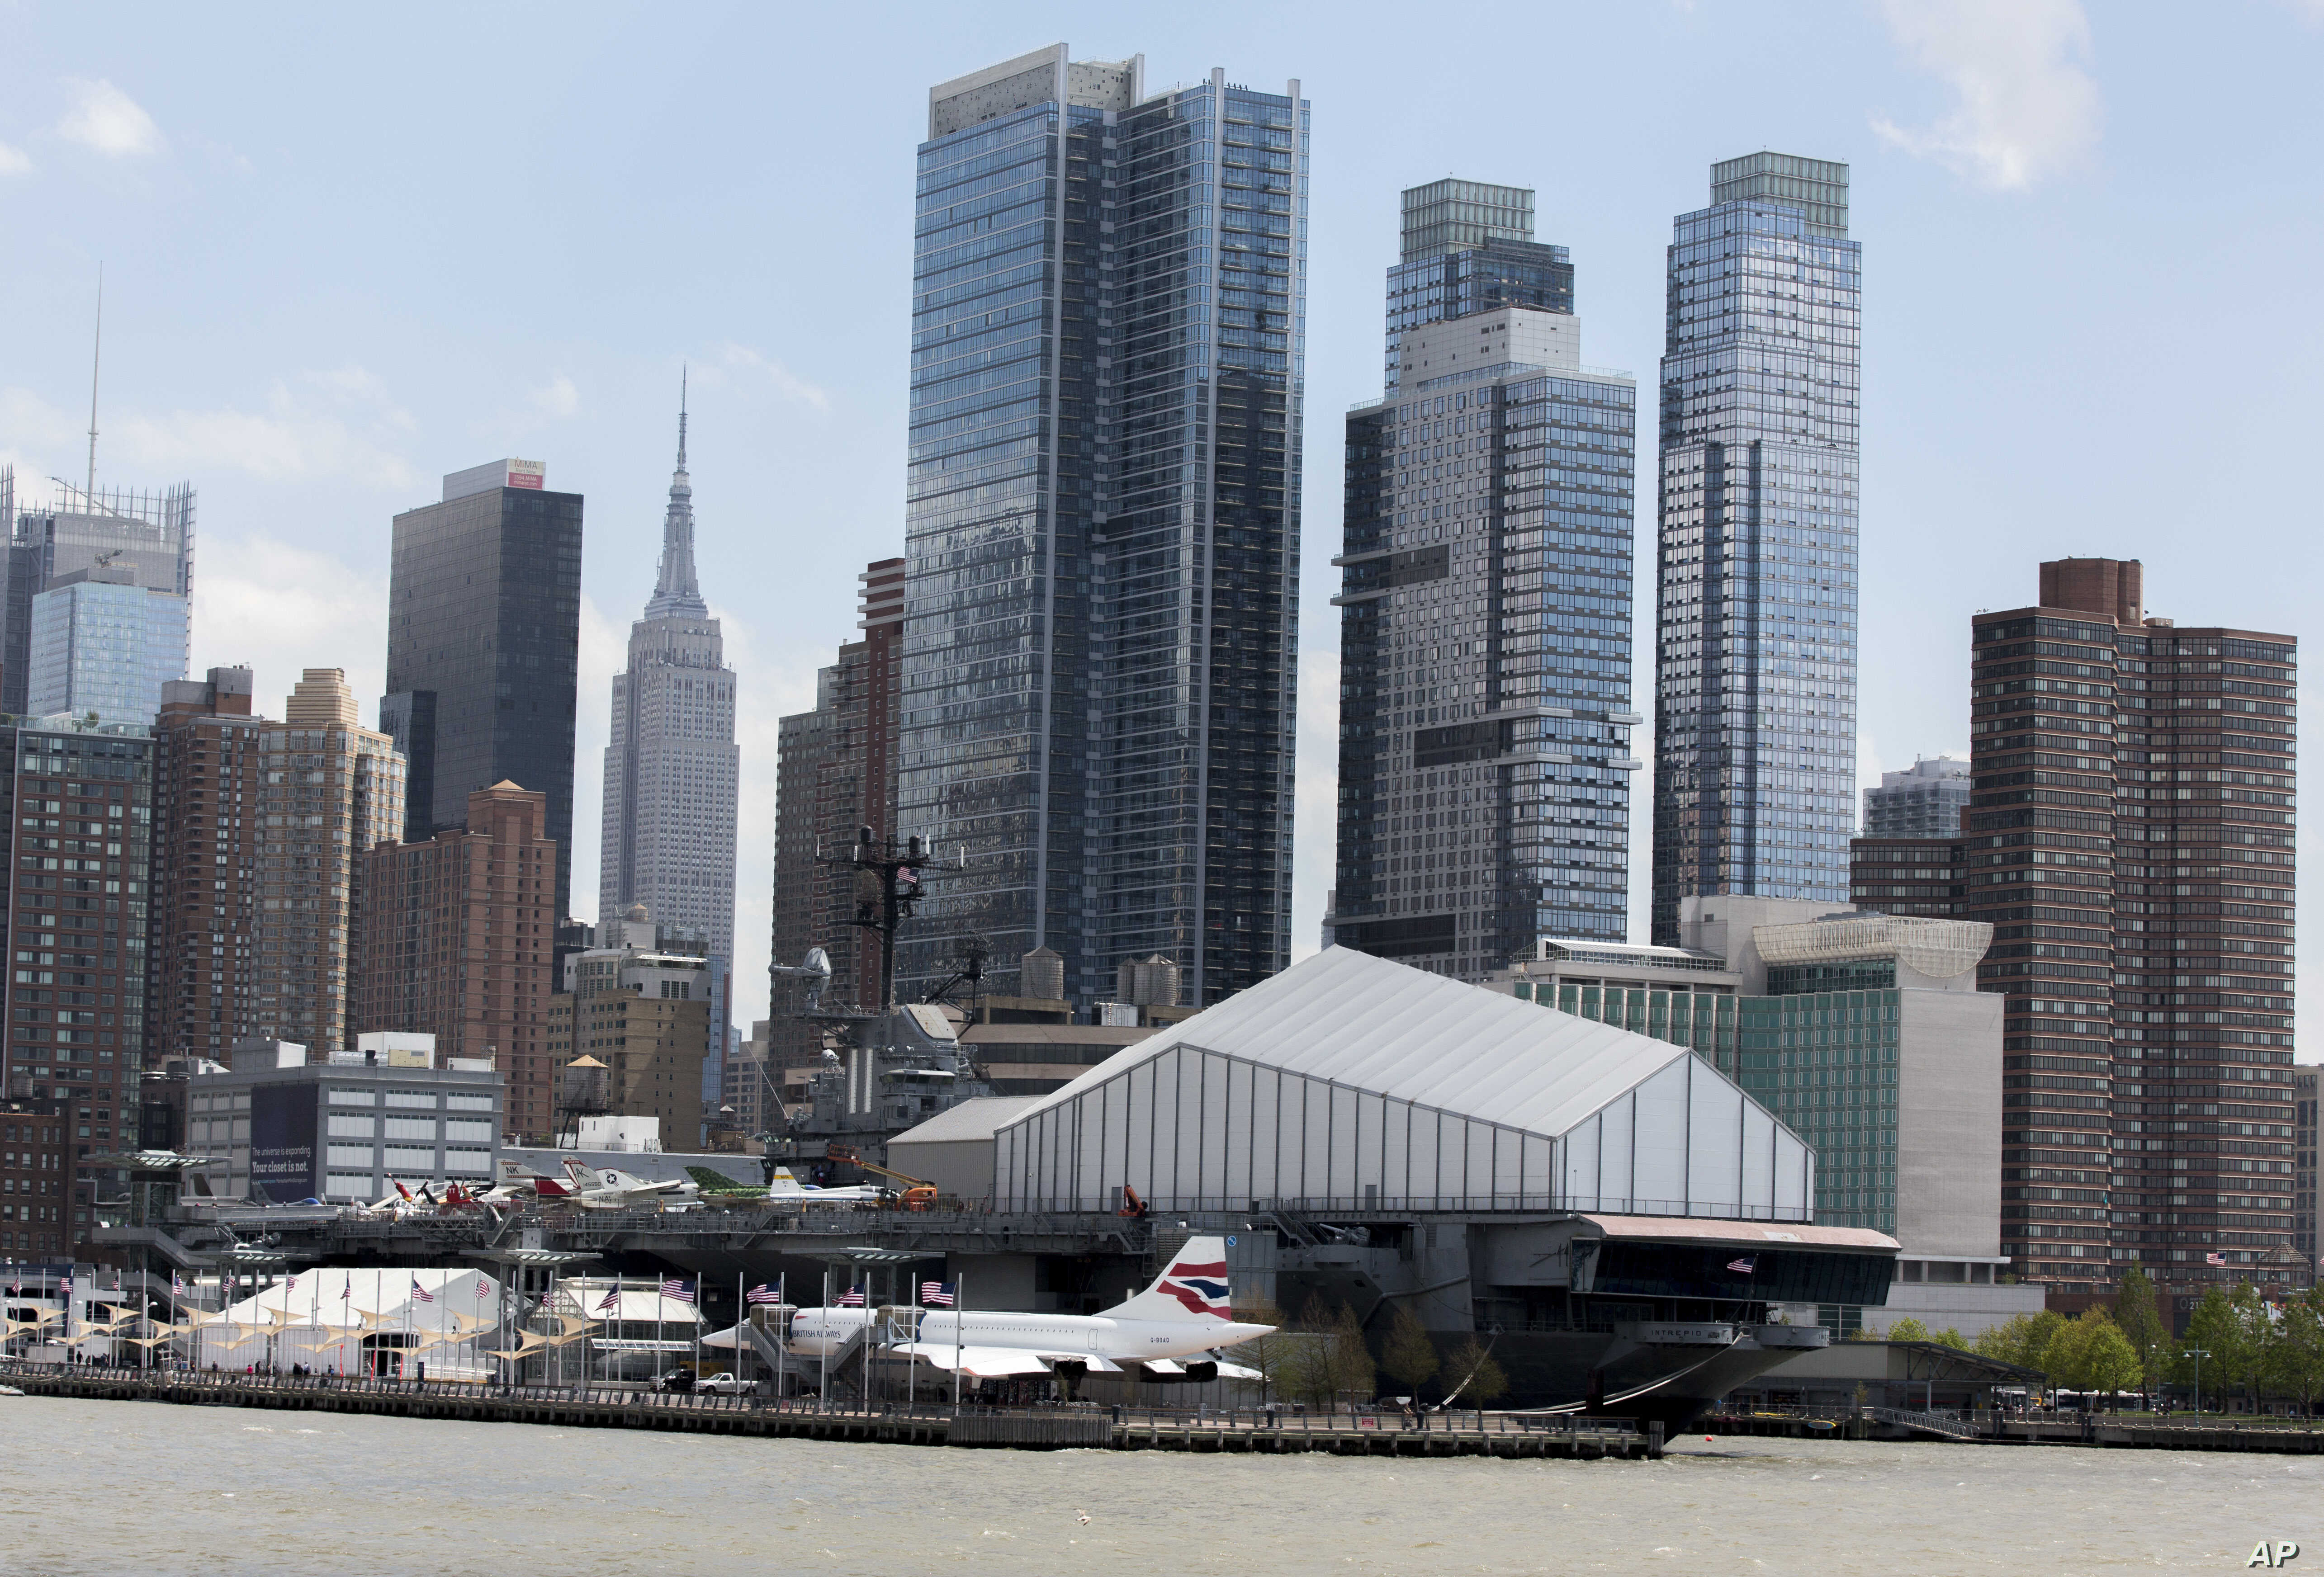 The Manhattan skyline with the Empire State Building rises behind the Intrepid Sea, Air & Space Museum in New York, May 2, 2017. Australian Prime Minister Malcolm Turnbull and President Donald Trump will attend the 75th Anniversary Battle of the Cor...